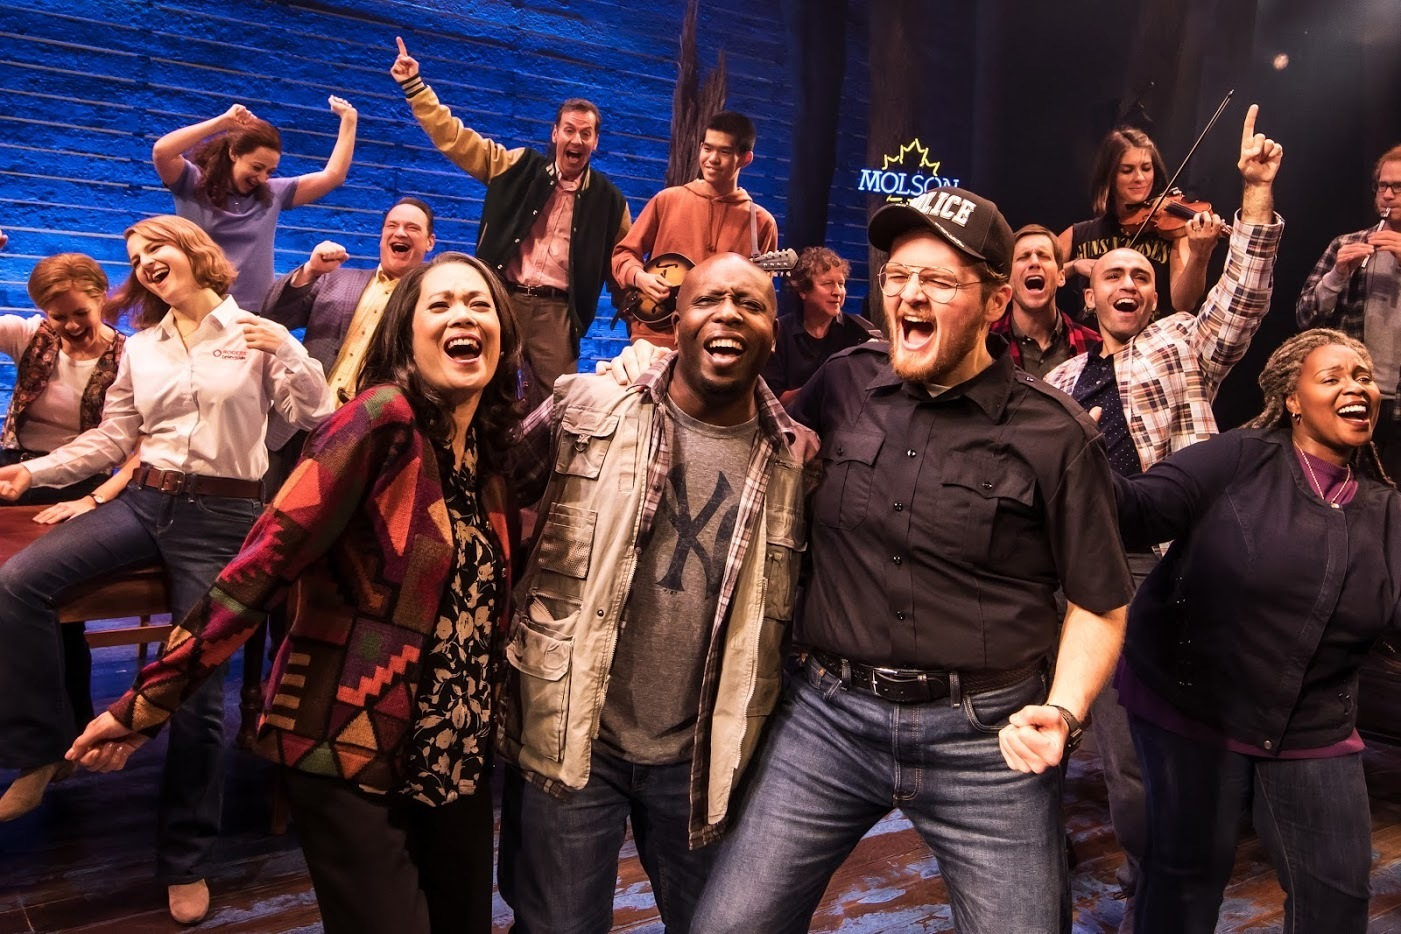 BWW Review: Emotional, Humorous, Heroic COME FROM AWAY At Connor Palace/Playhouse Square